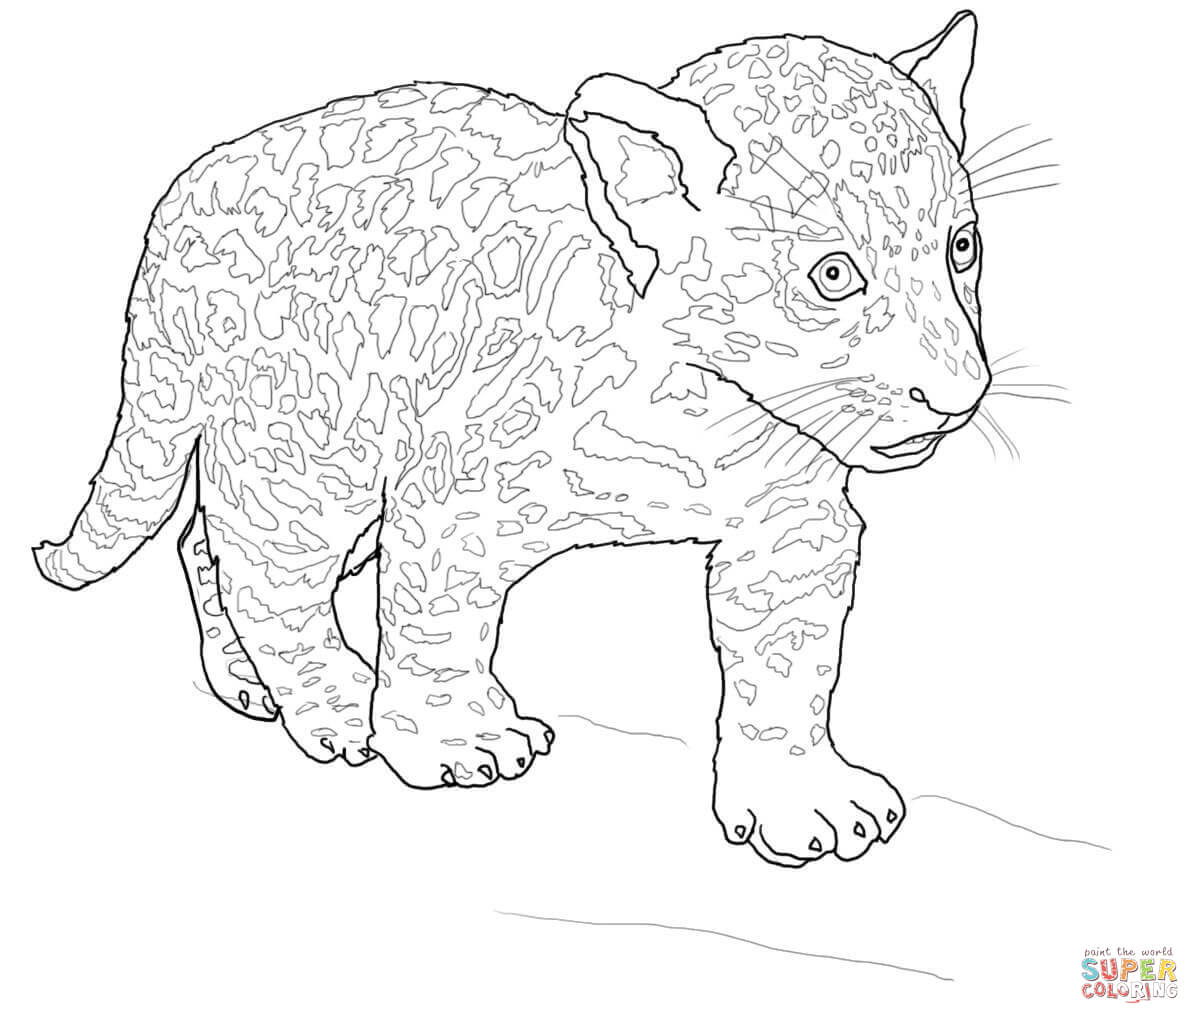 Jaguar coloring pages to download